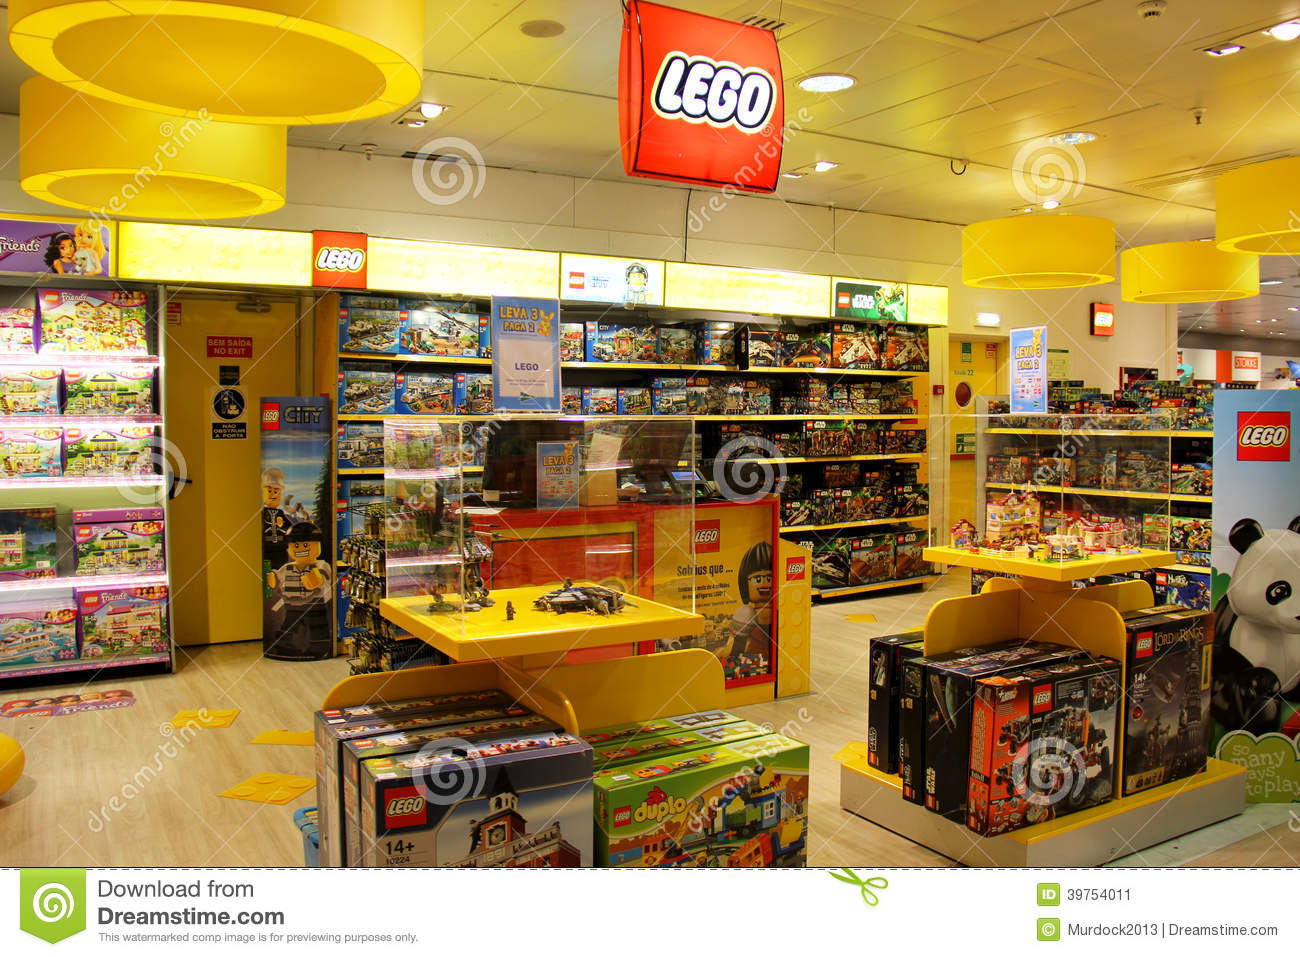 bellevue square mall map with Stock Image Lego Store Department Lisbon Portugal Photo Taken April Image39754011 on Laurelbrooke Franklin Tn together with 587333104016818176 furthermore Map further Southside Plaza Shopping Center besides Stock Image Lego Store Department Lisbon Portugal Photo Taken April Image39754011.